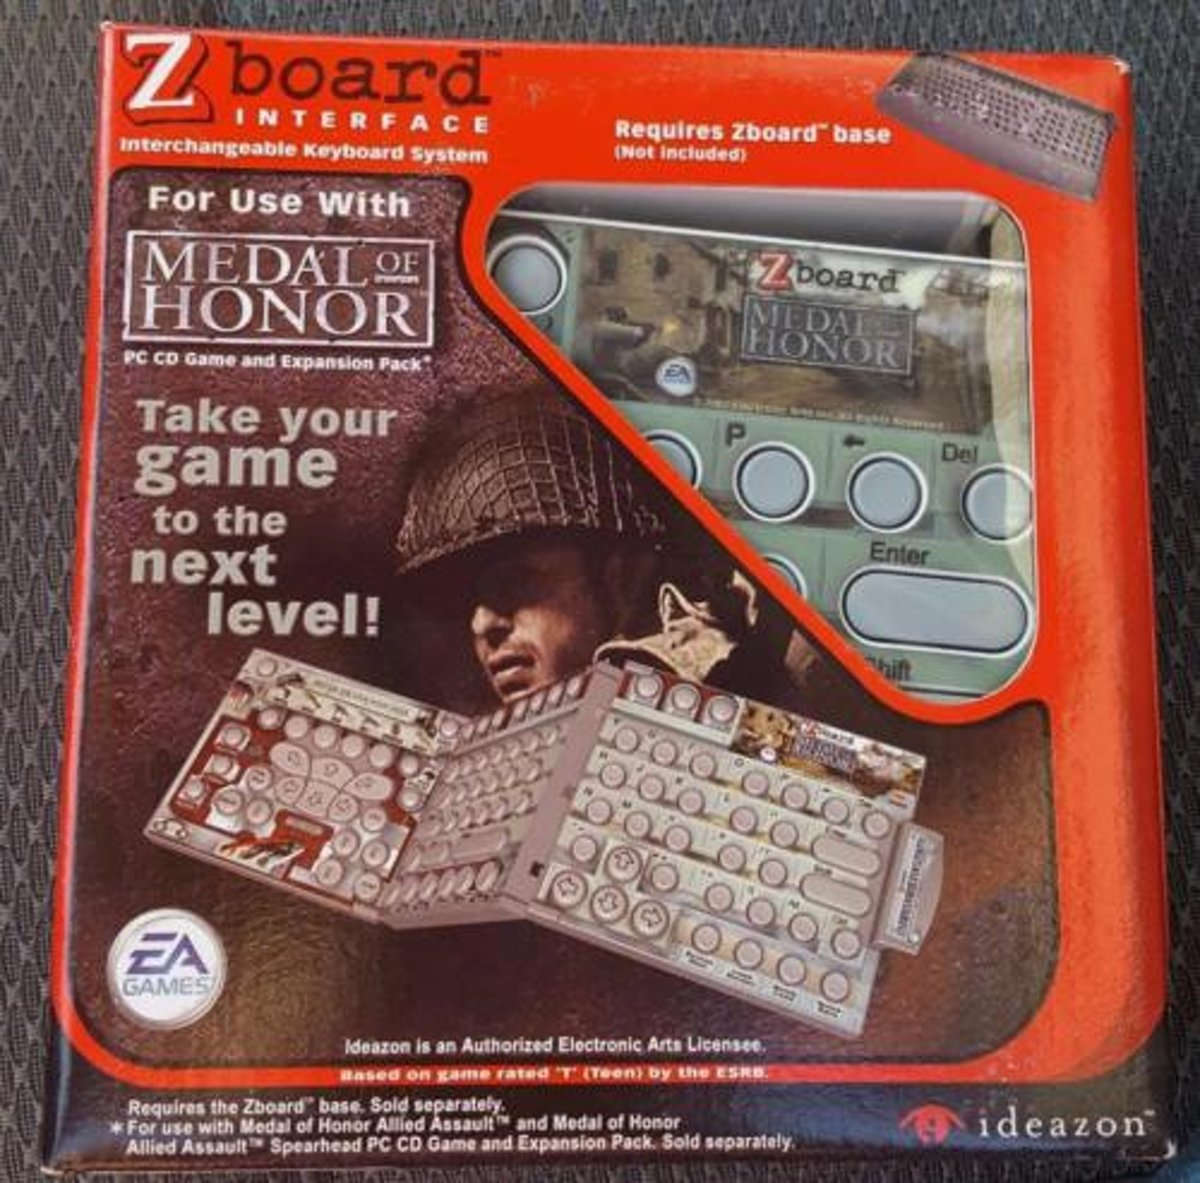 Medal of Honor z board keyboard